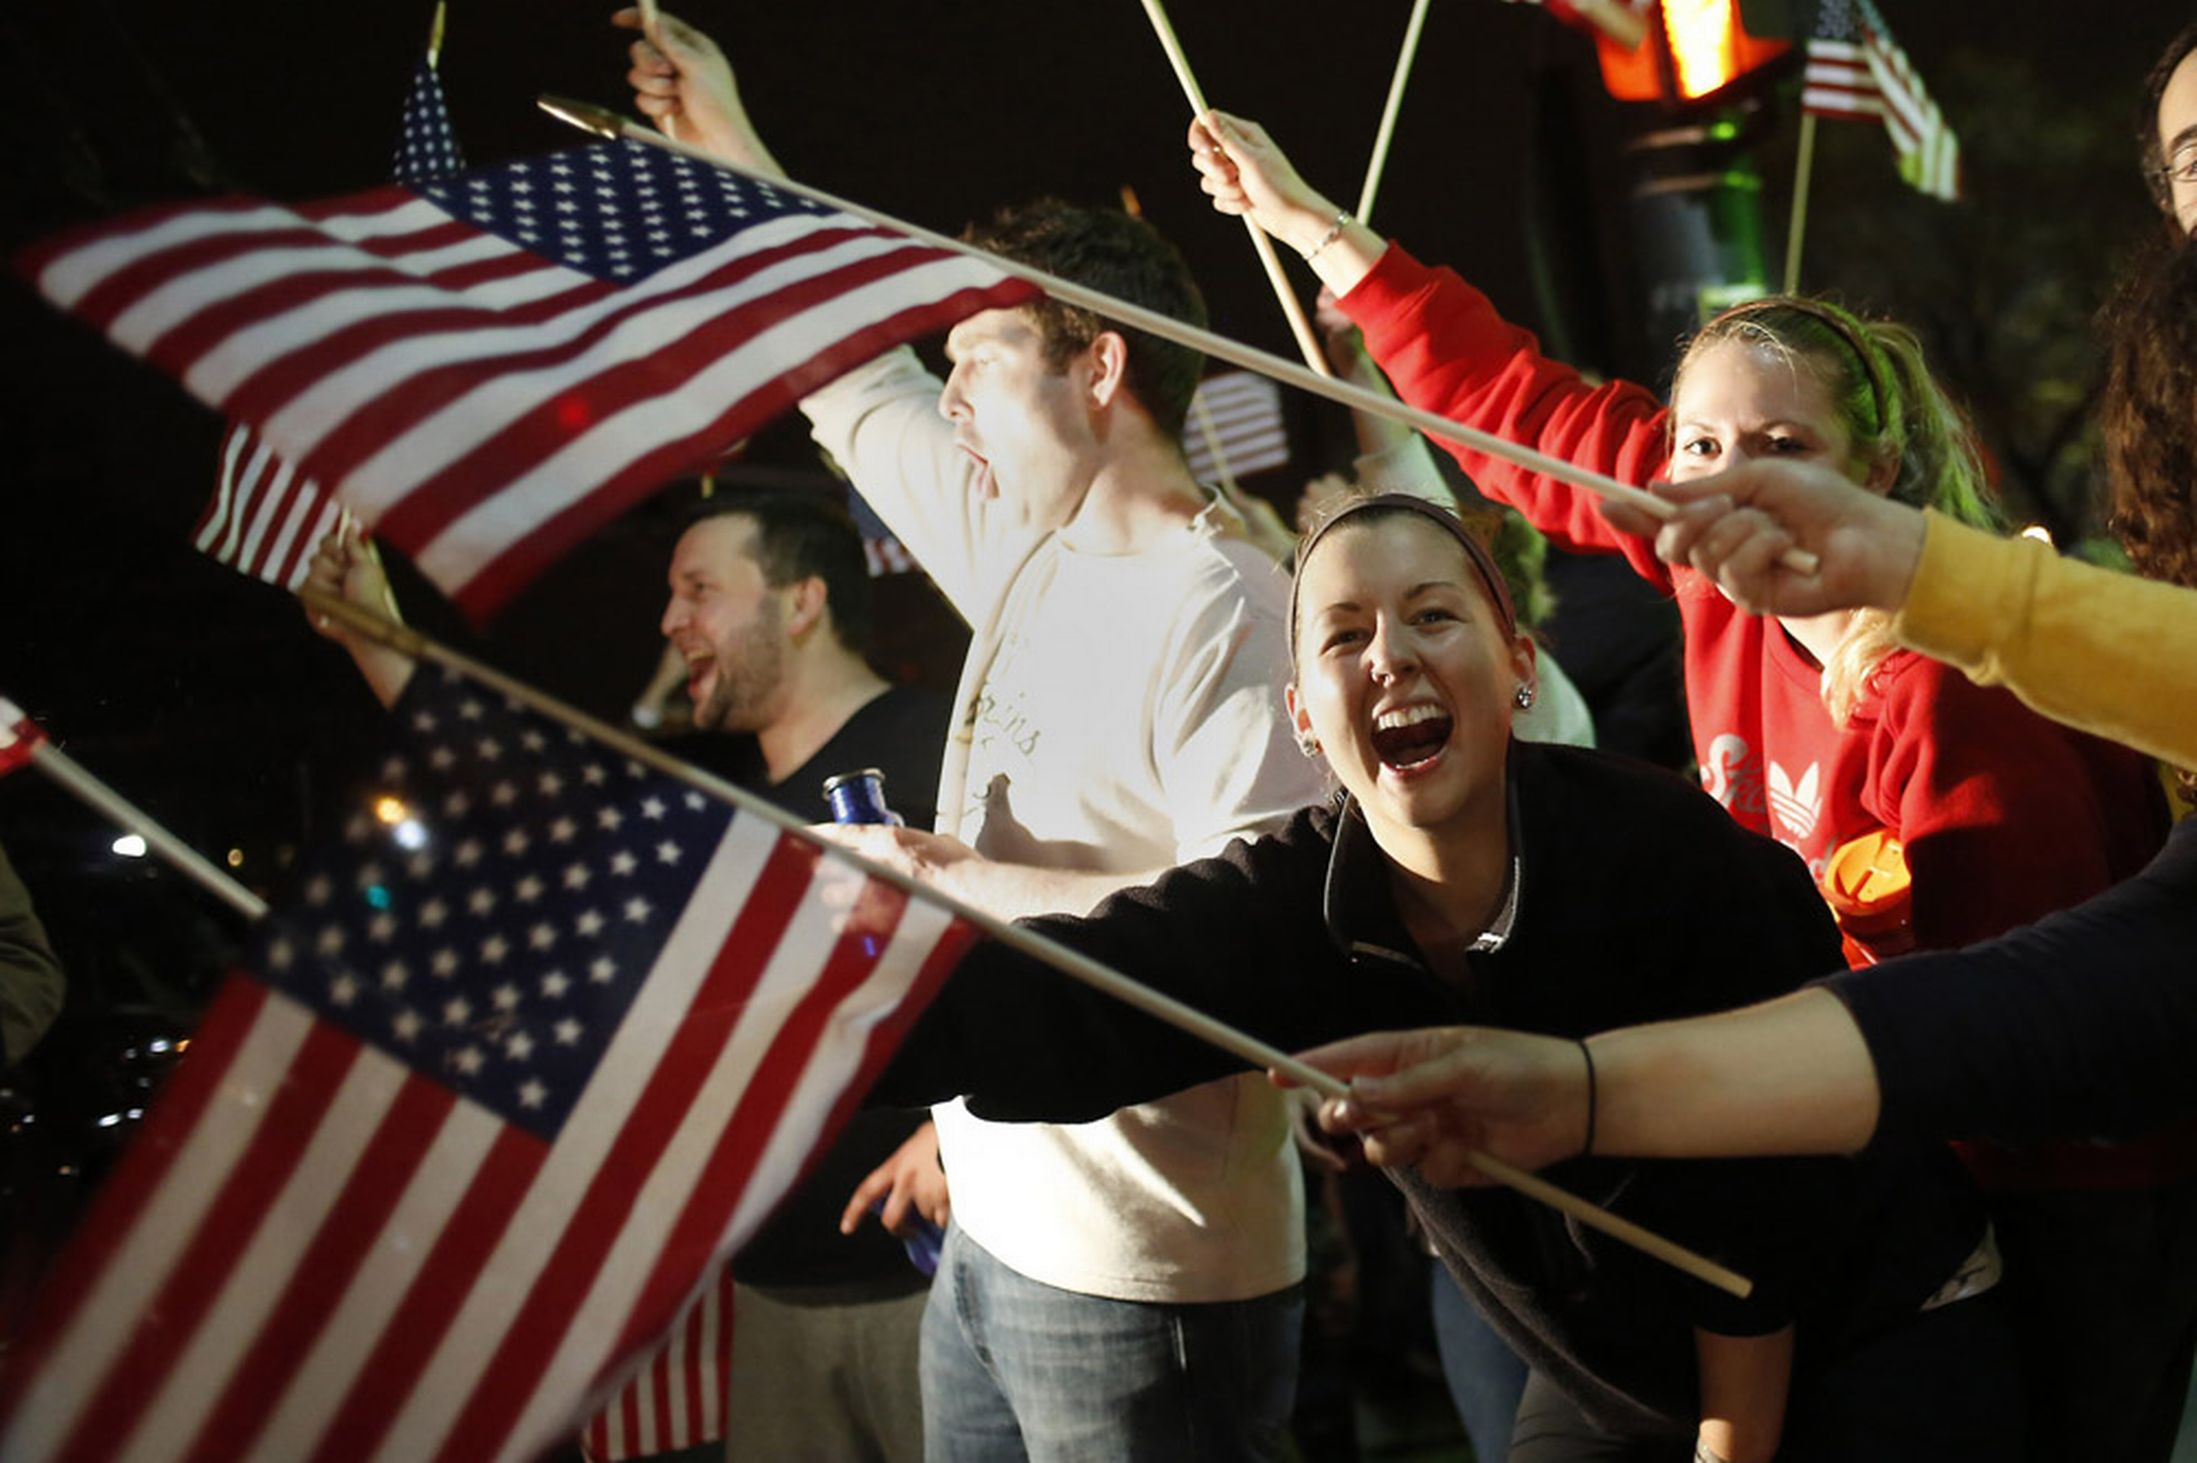 crowd.smiling.waving.flags.Boston-Celebration-Capture01842825.jpg